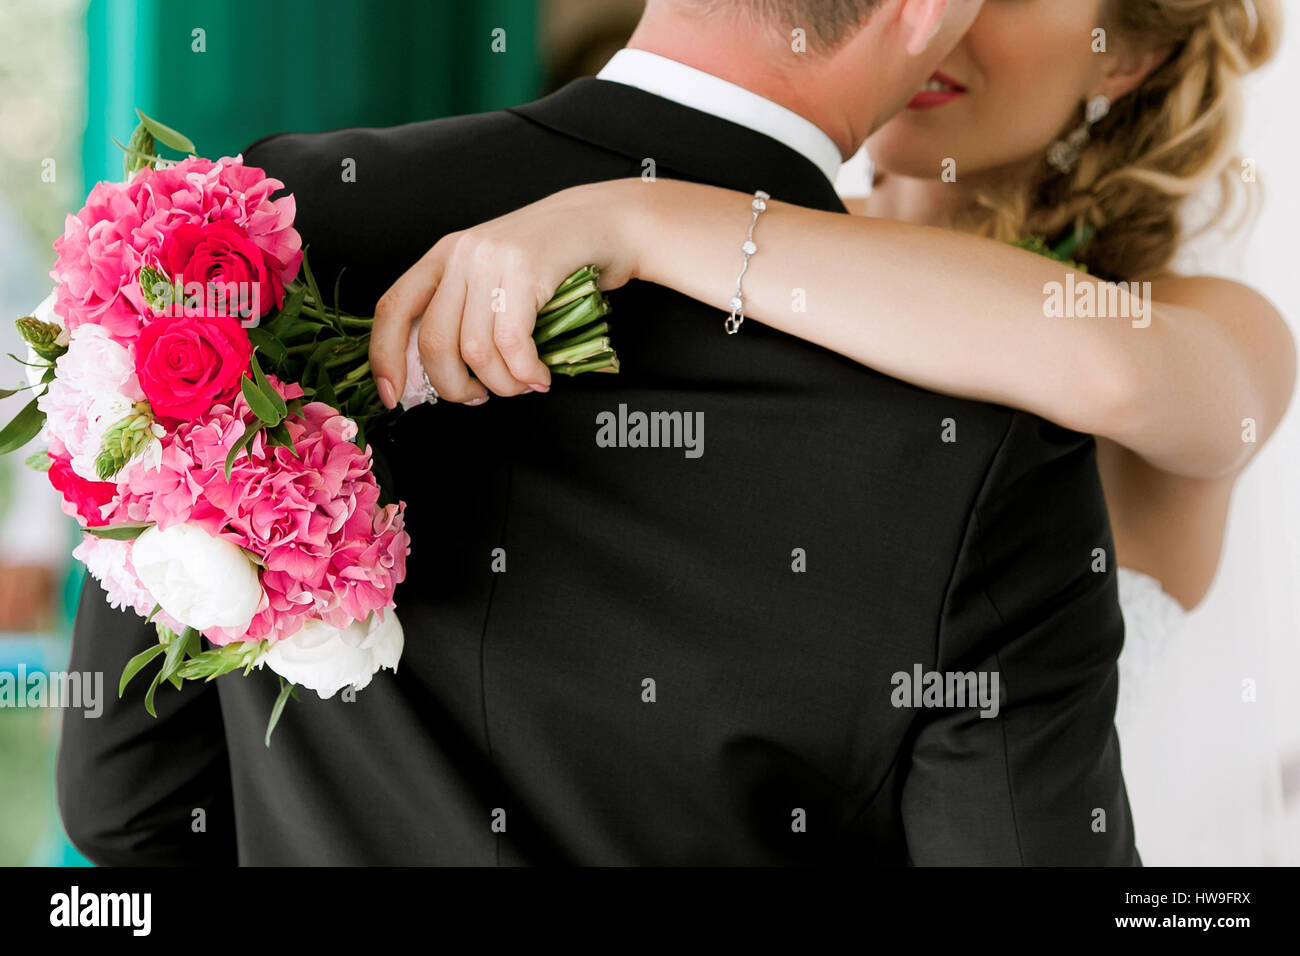 Young wedding couple. Groom and bride together - Stock Image